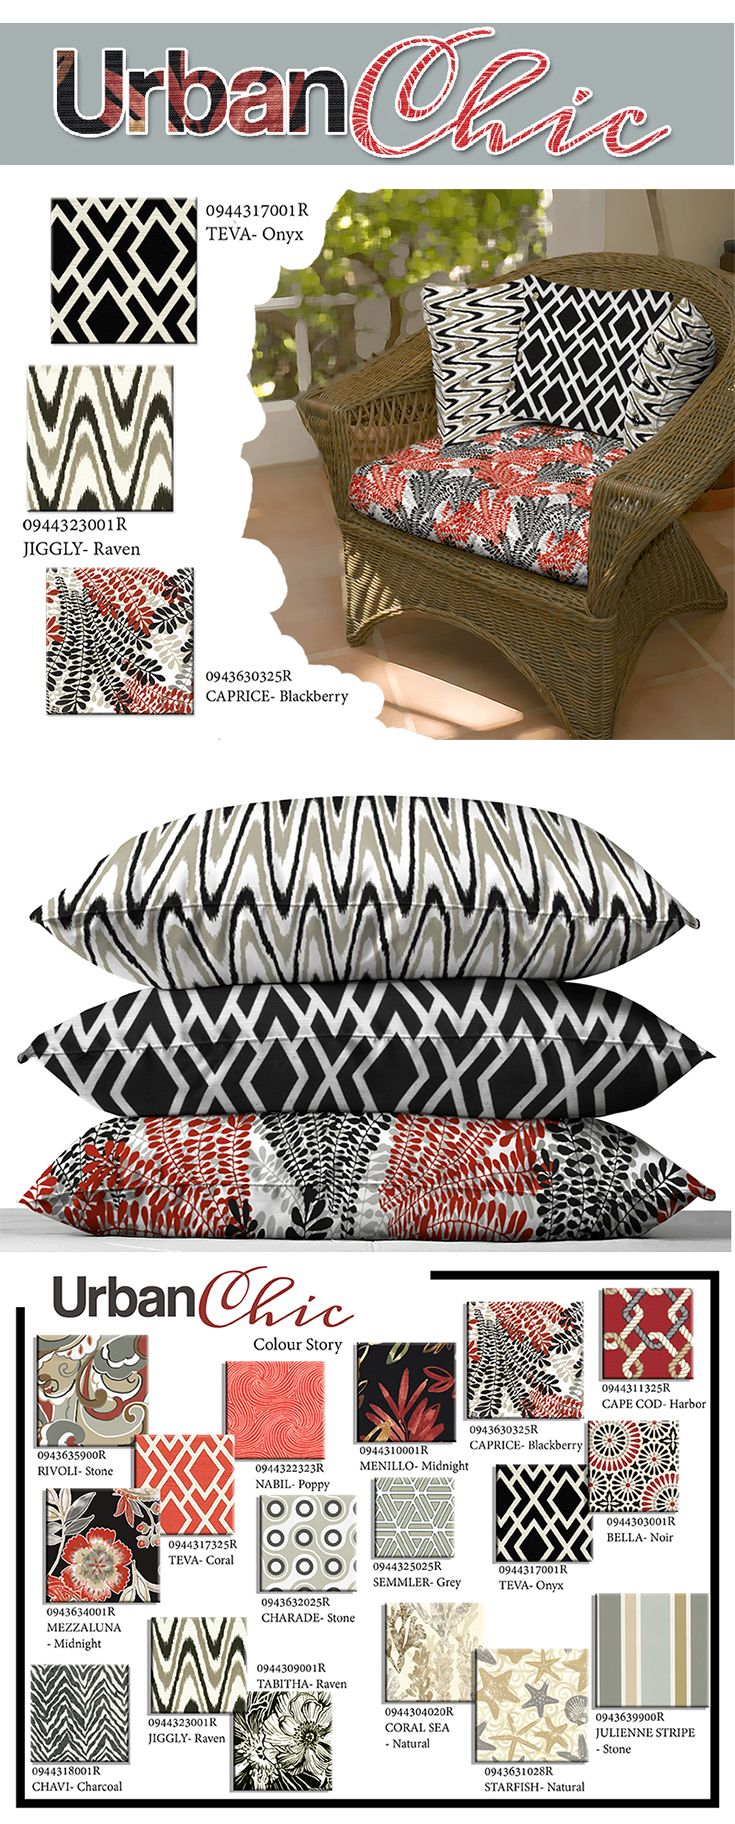 Fabricland Decorative Pillows : 17 Best images about Fabricland Outdoor Fabric on Pinterest Outdoor fabric, Canada and Ontario